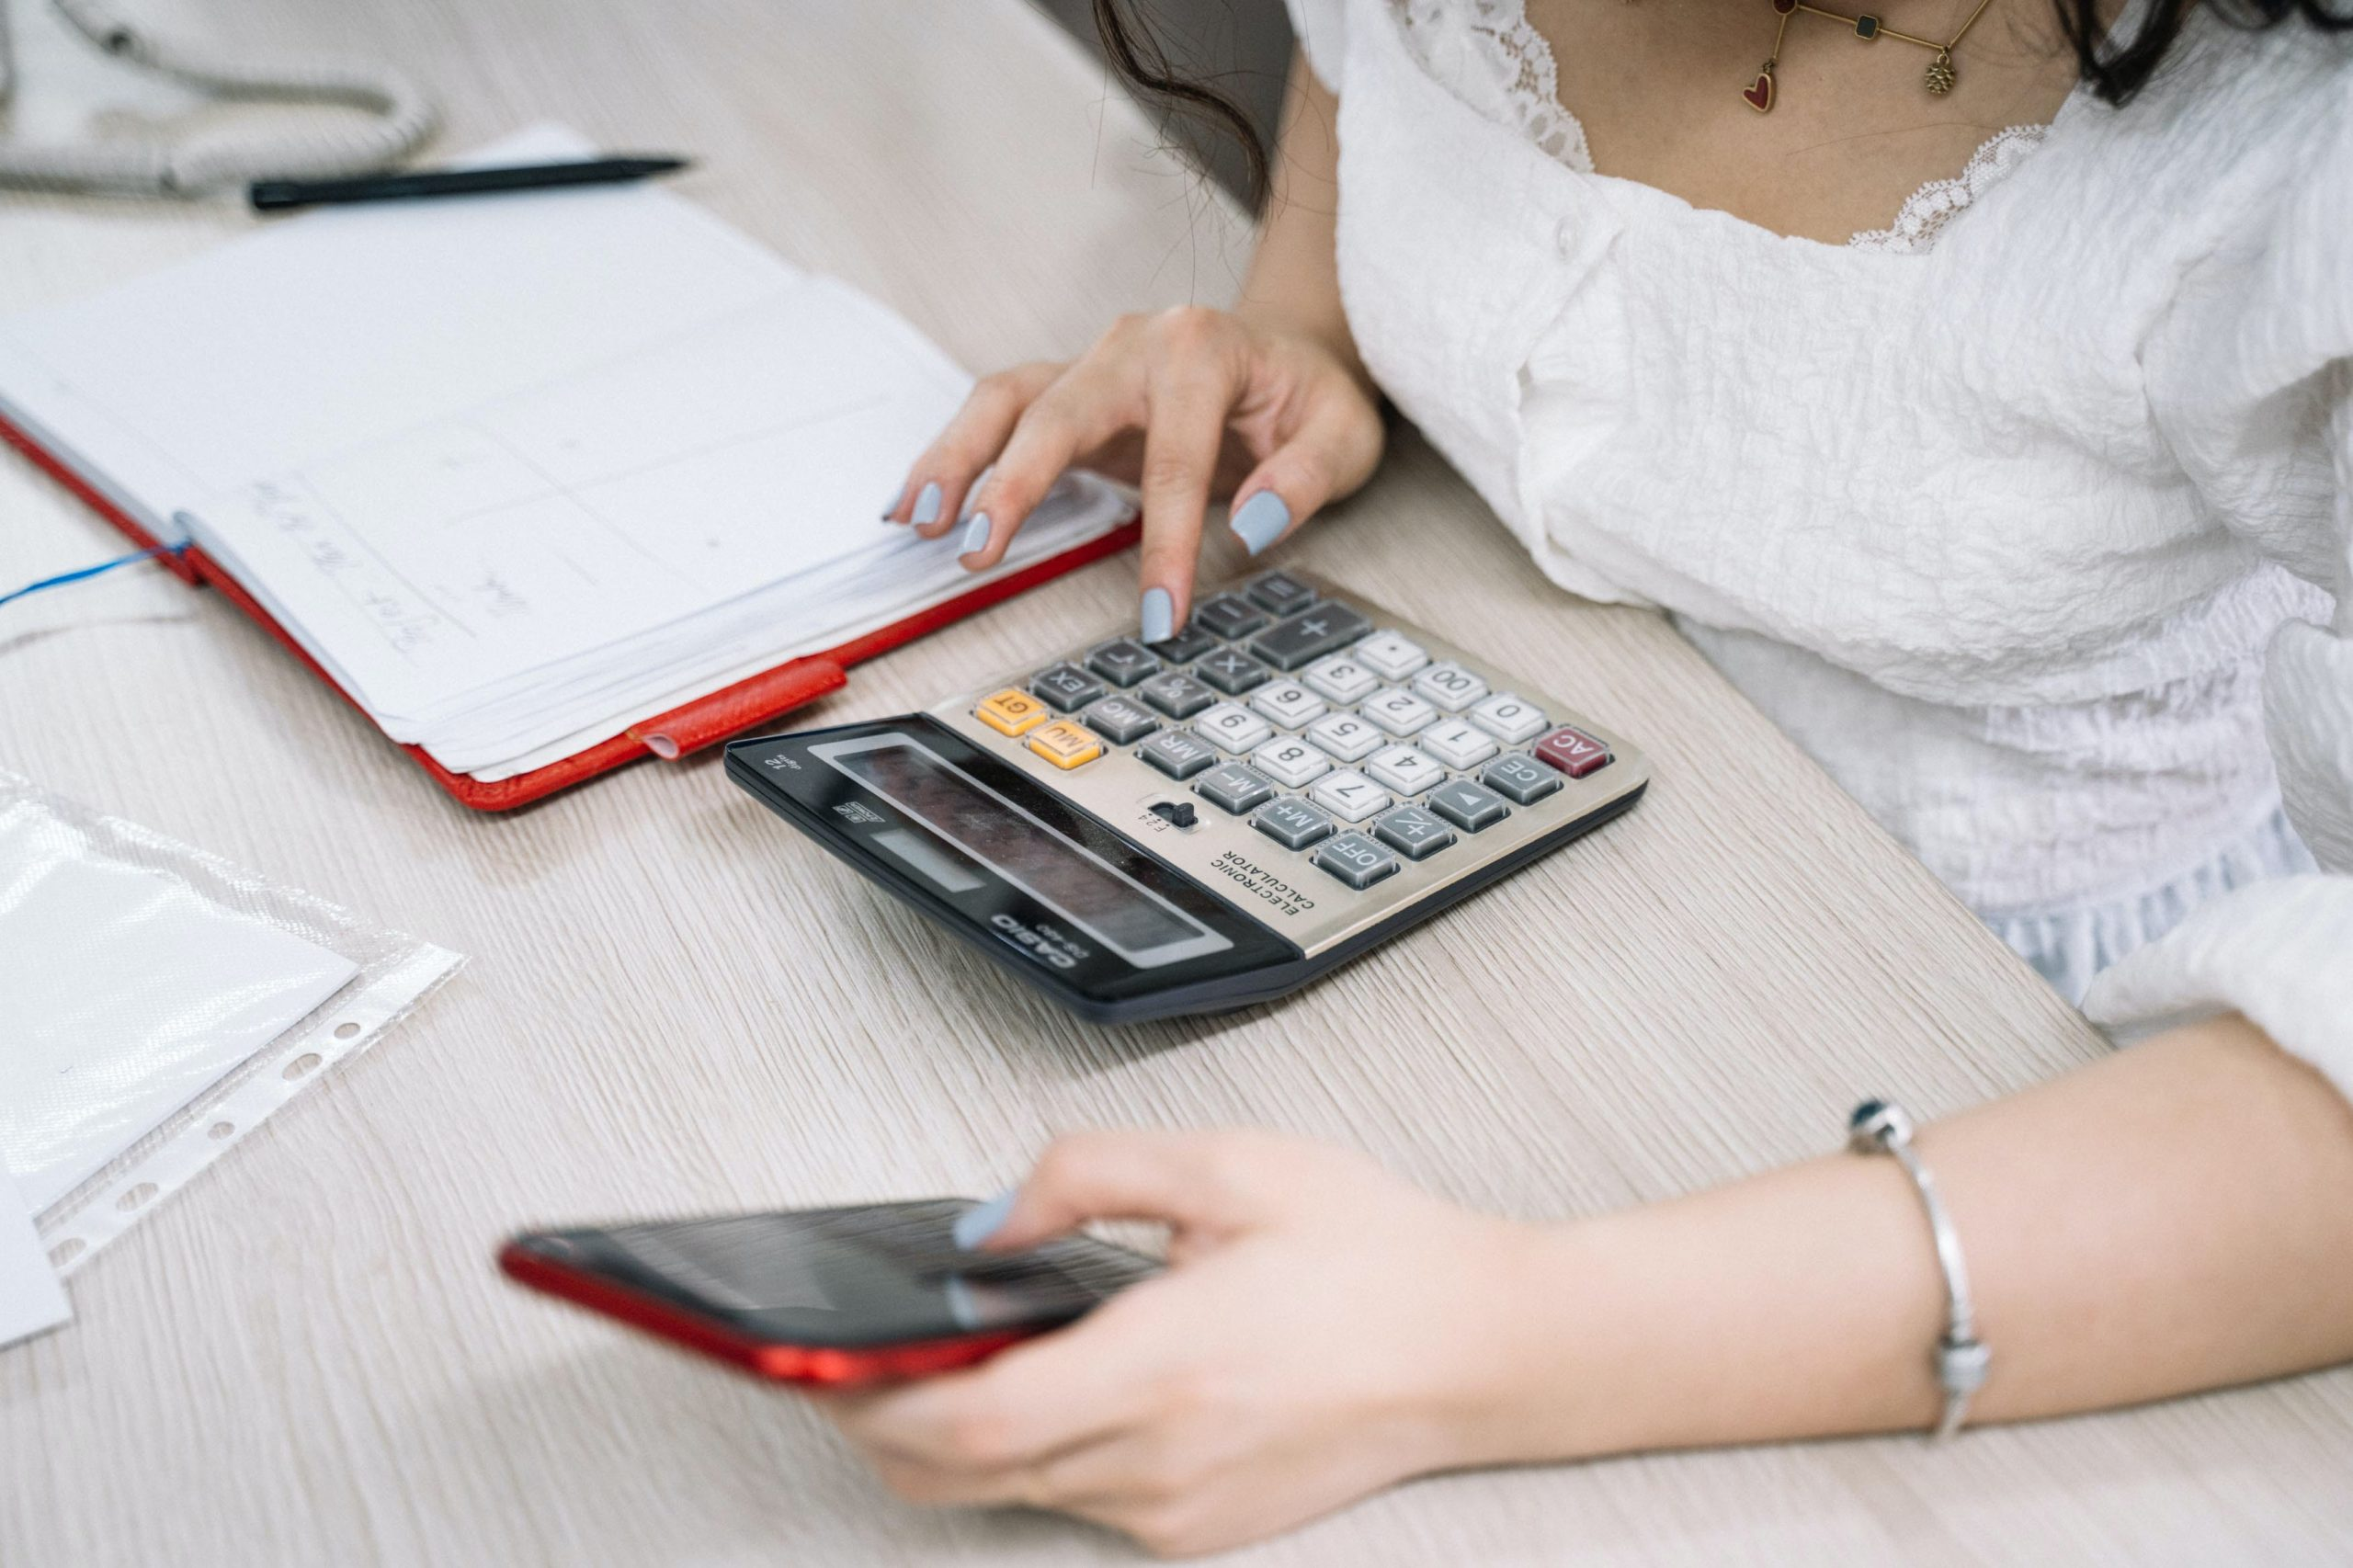 Women with a calculator and phone